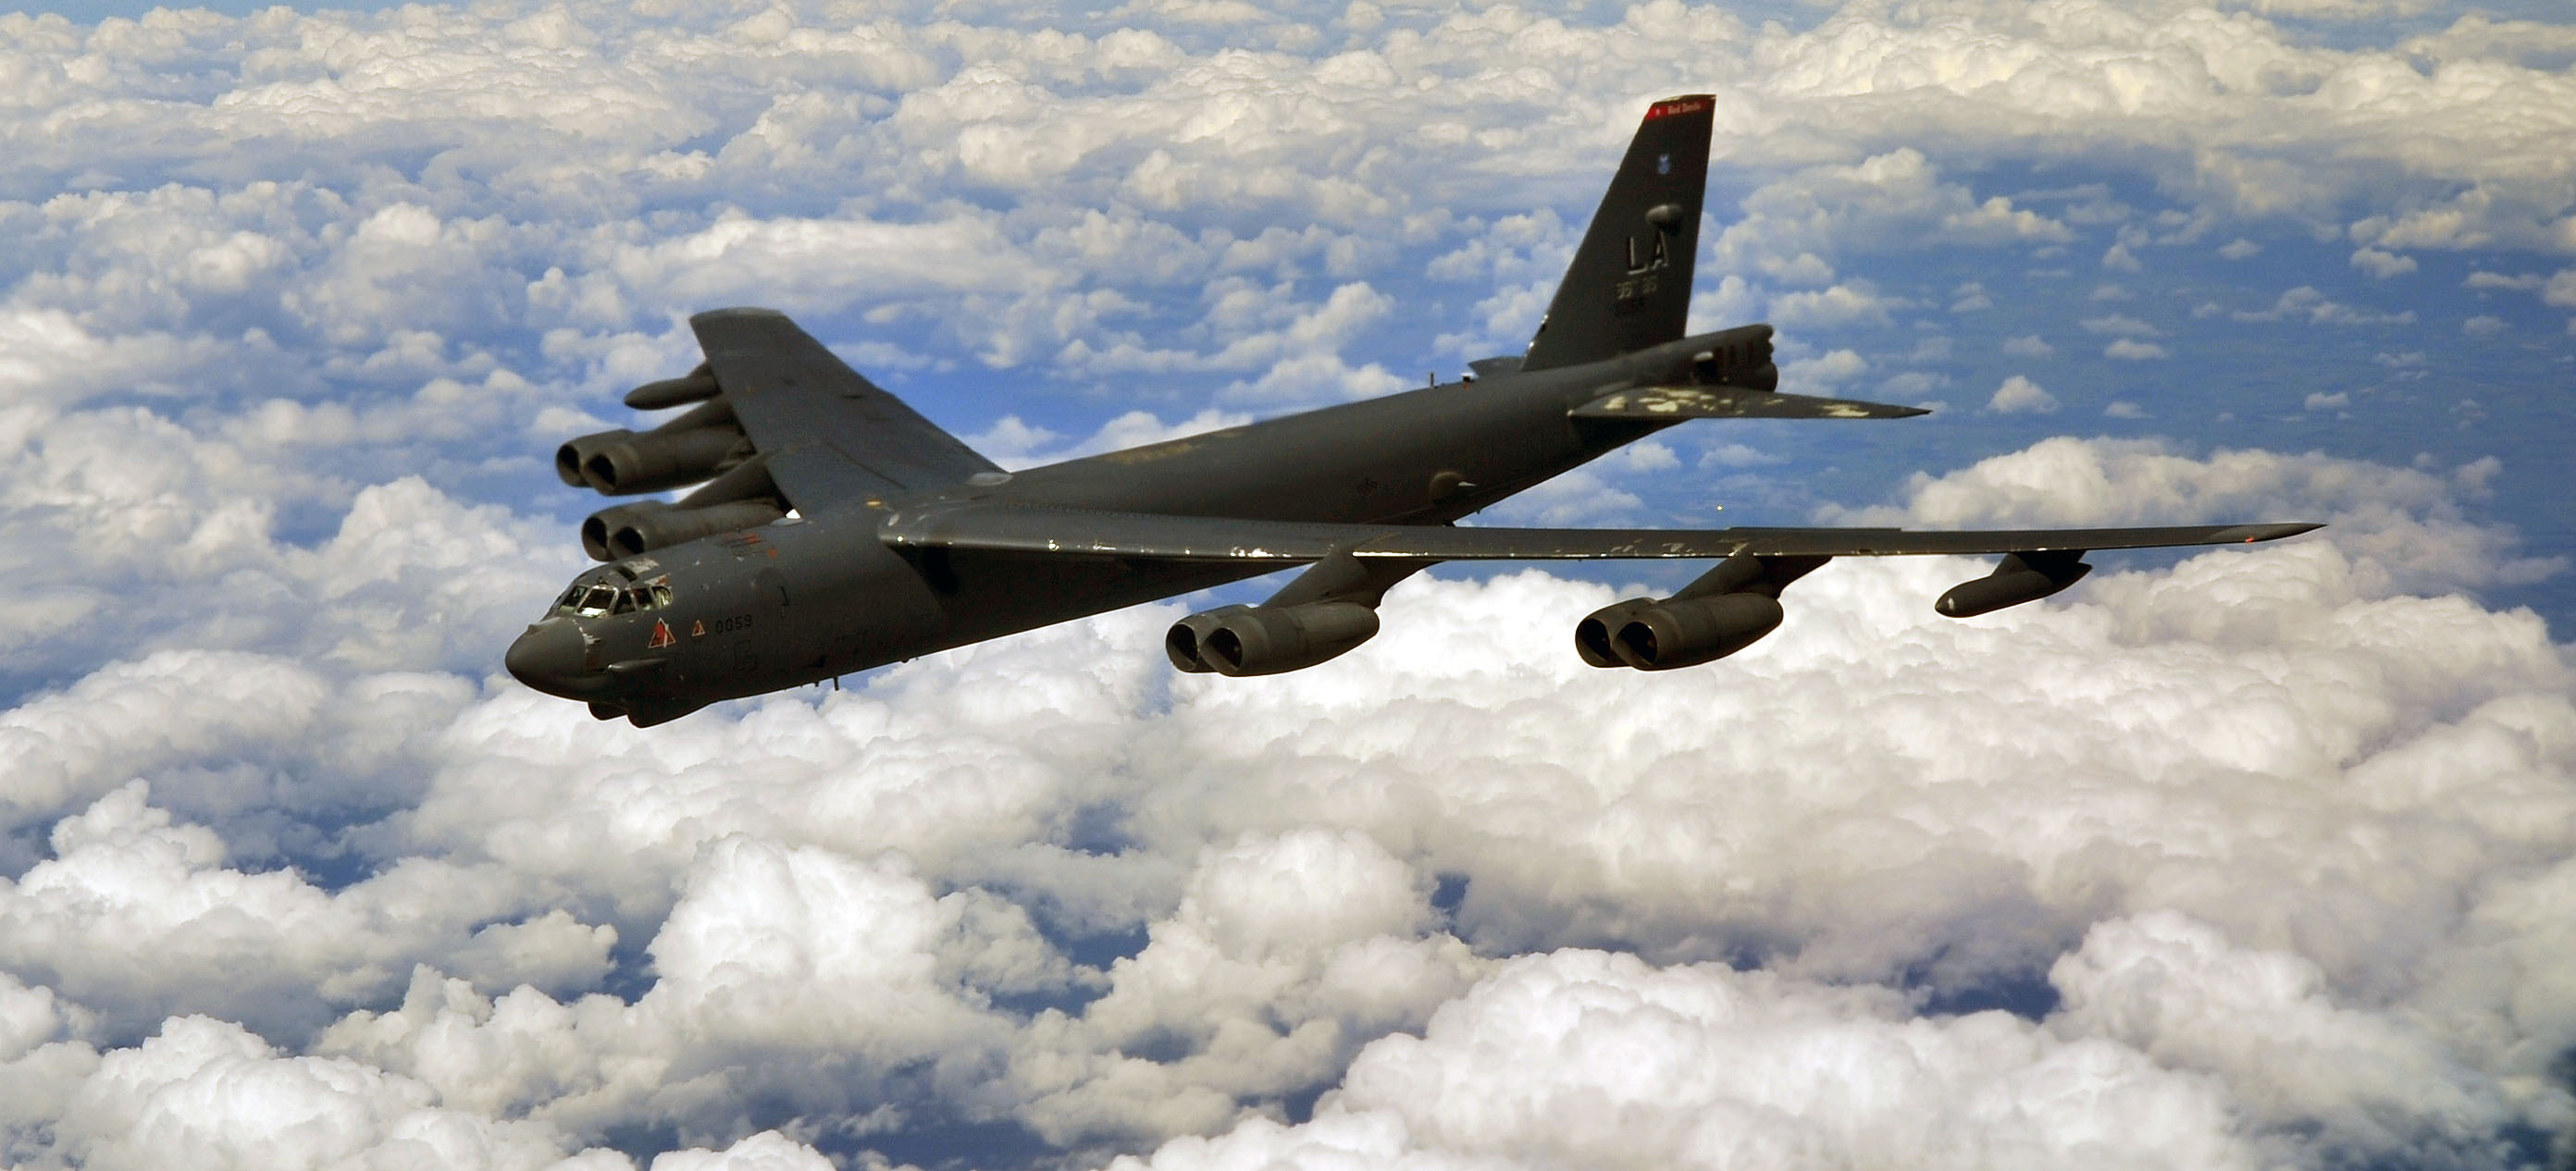 Rolls-Royce offers engine for B-52 propulsion modernization